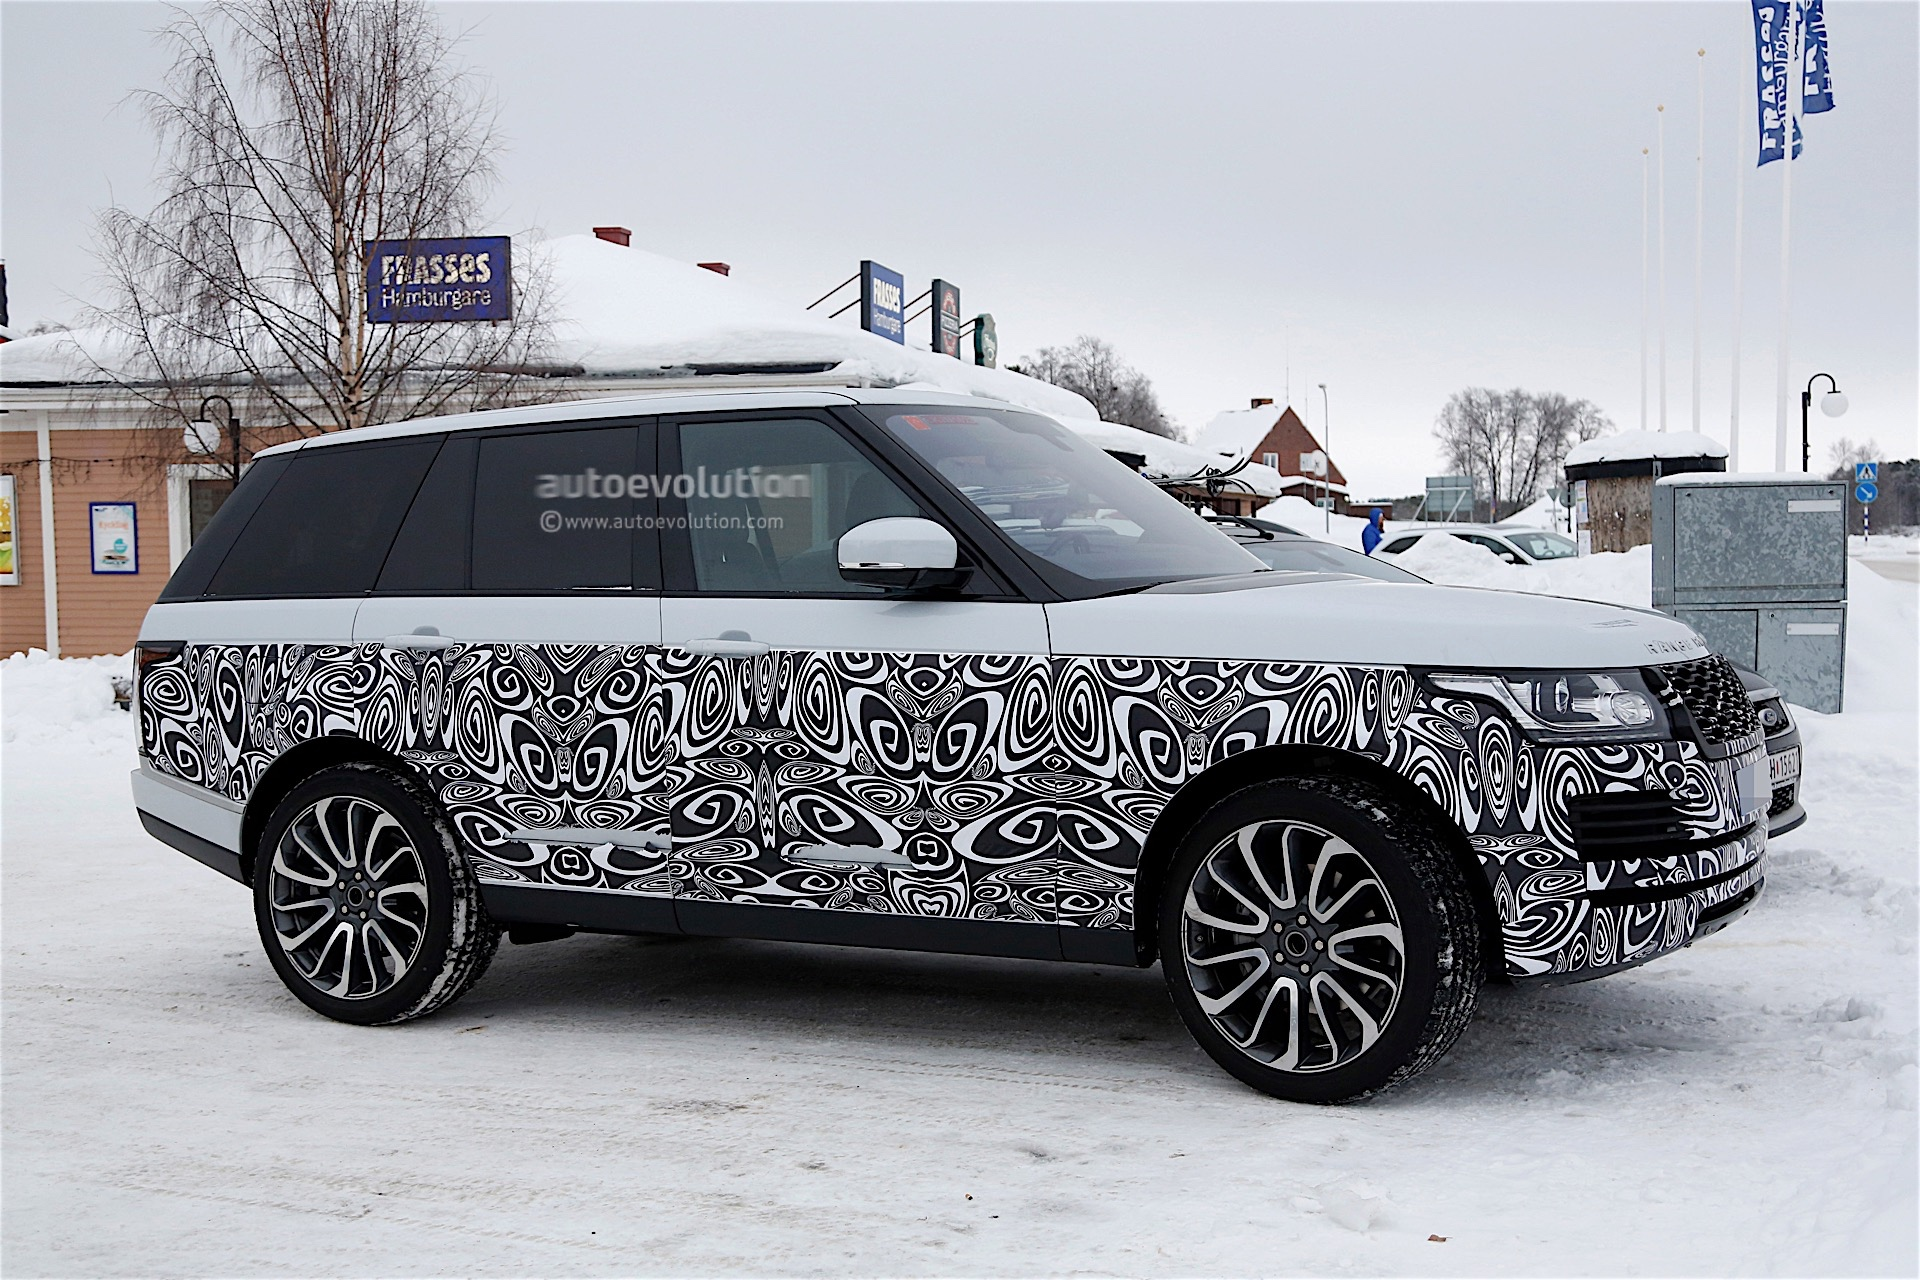 2017 Range Rover Facelift Spied With Small Changes